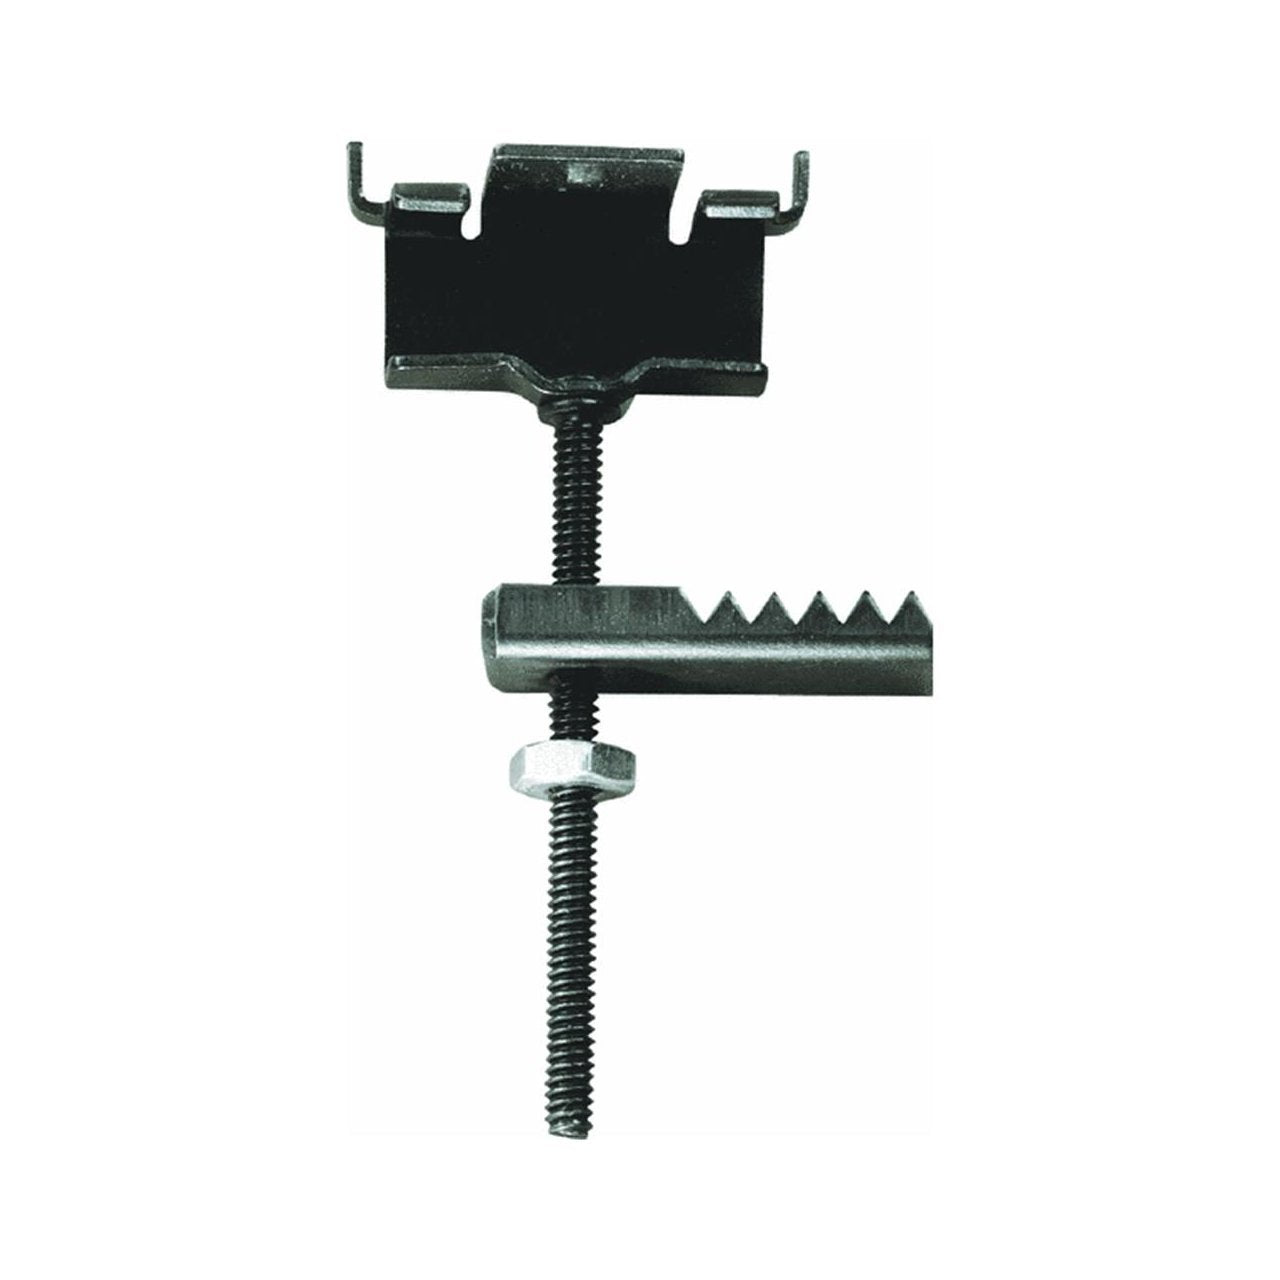 Sterling Plumbing 1150001 Sink Clips, For Use with 147084NA, 114044NA Sinks